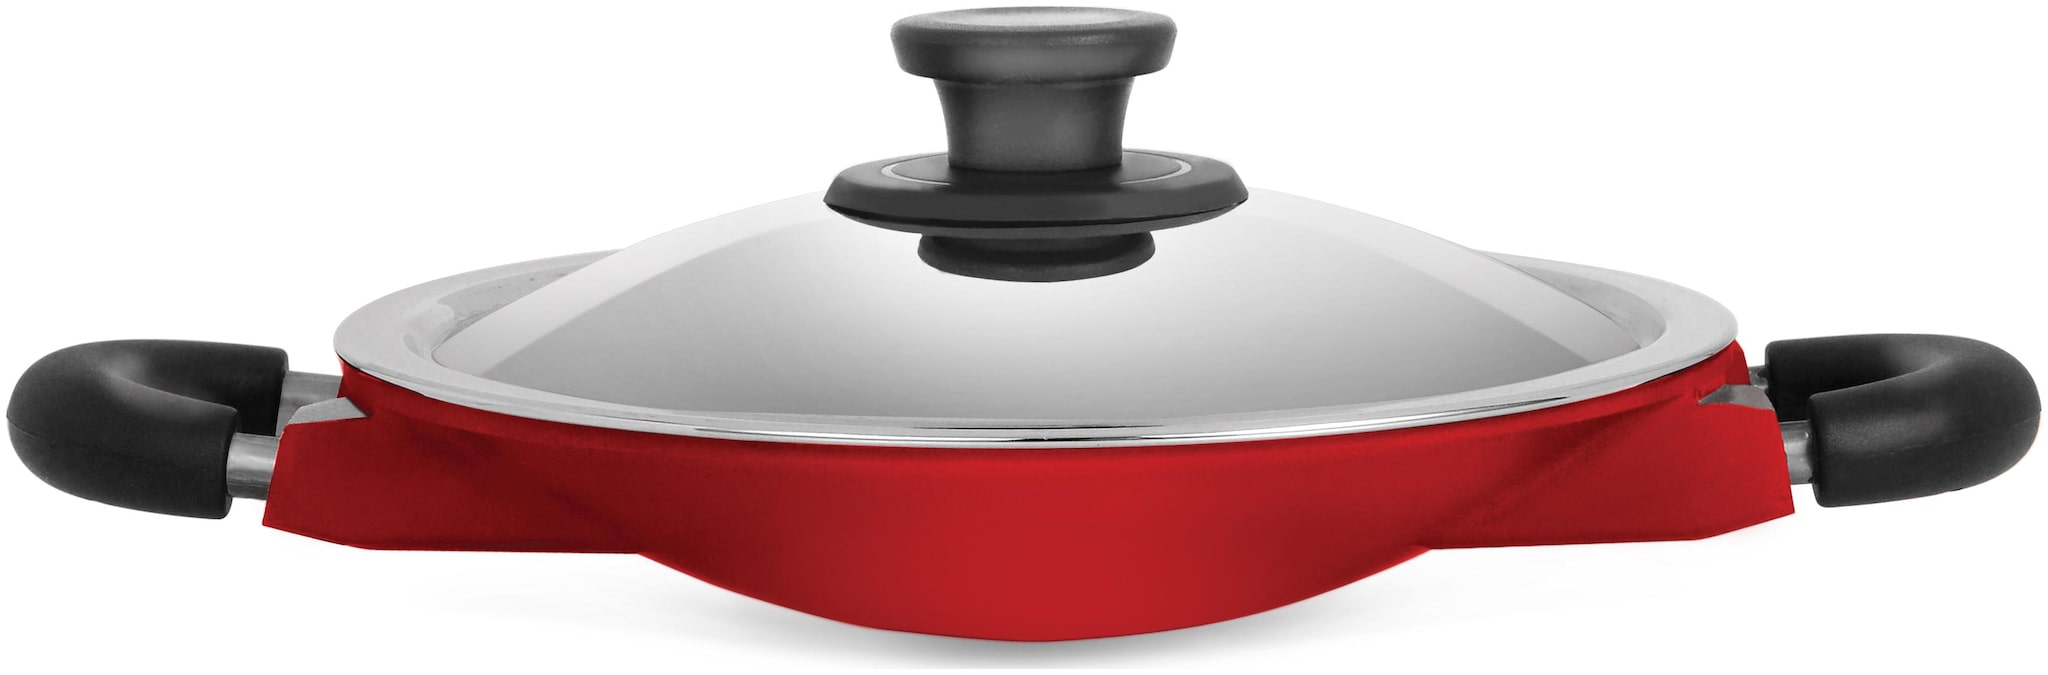 Pigeon Die Cast Wondercast Appachetty with Lid Flat Pan 20 cm diameter with Lid   Aluminium, Non Stick